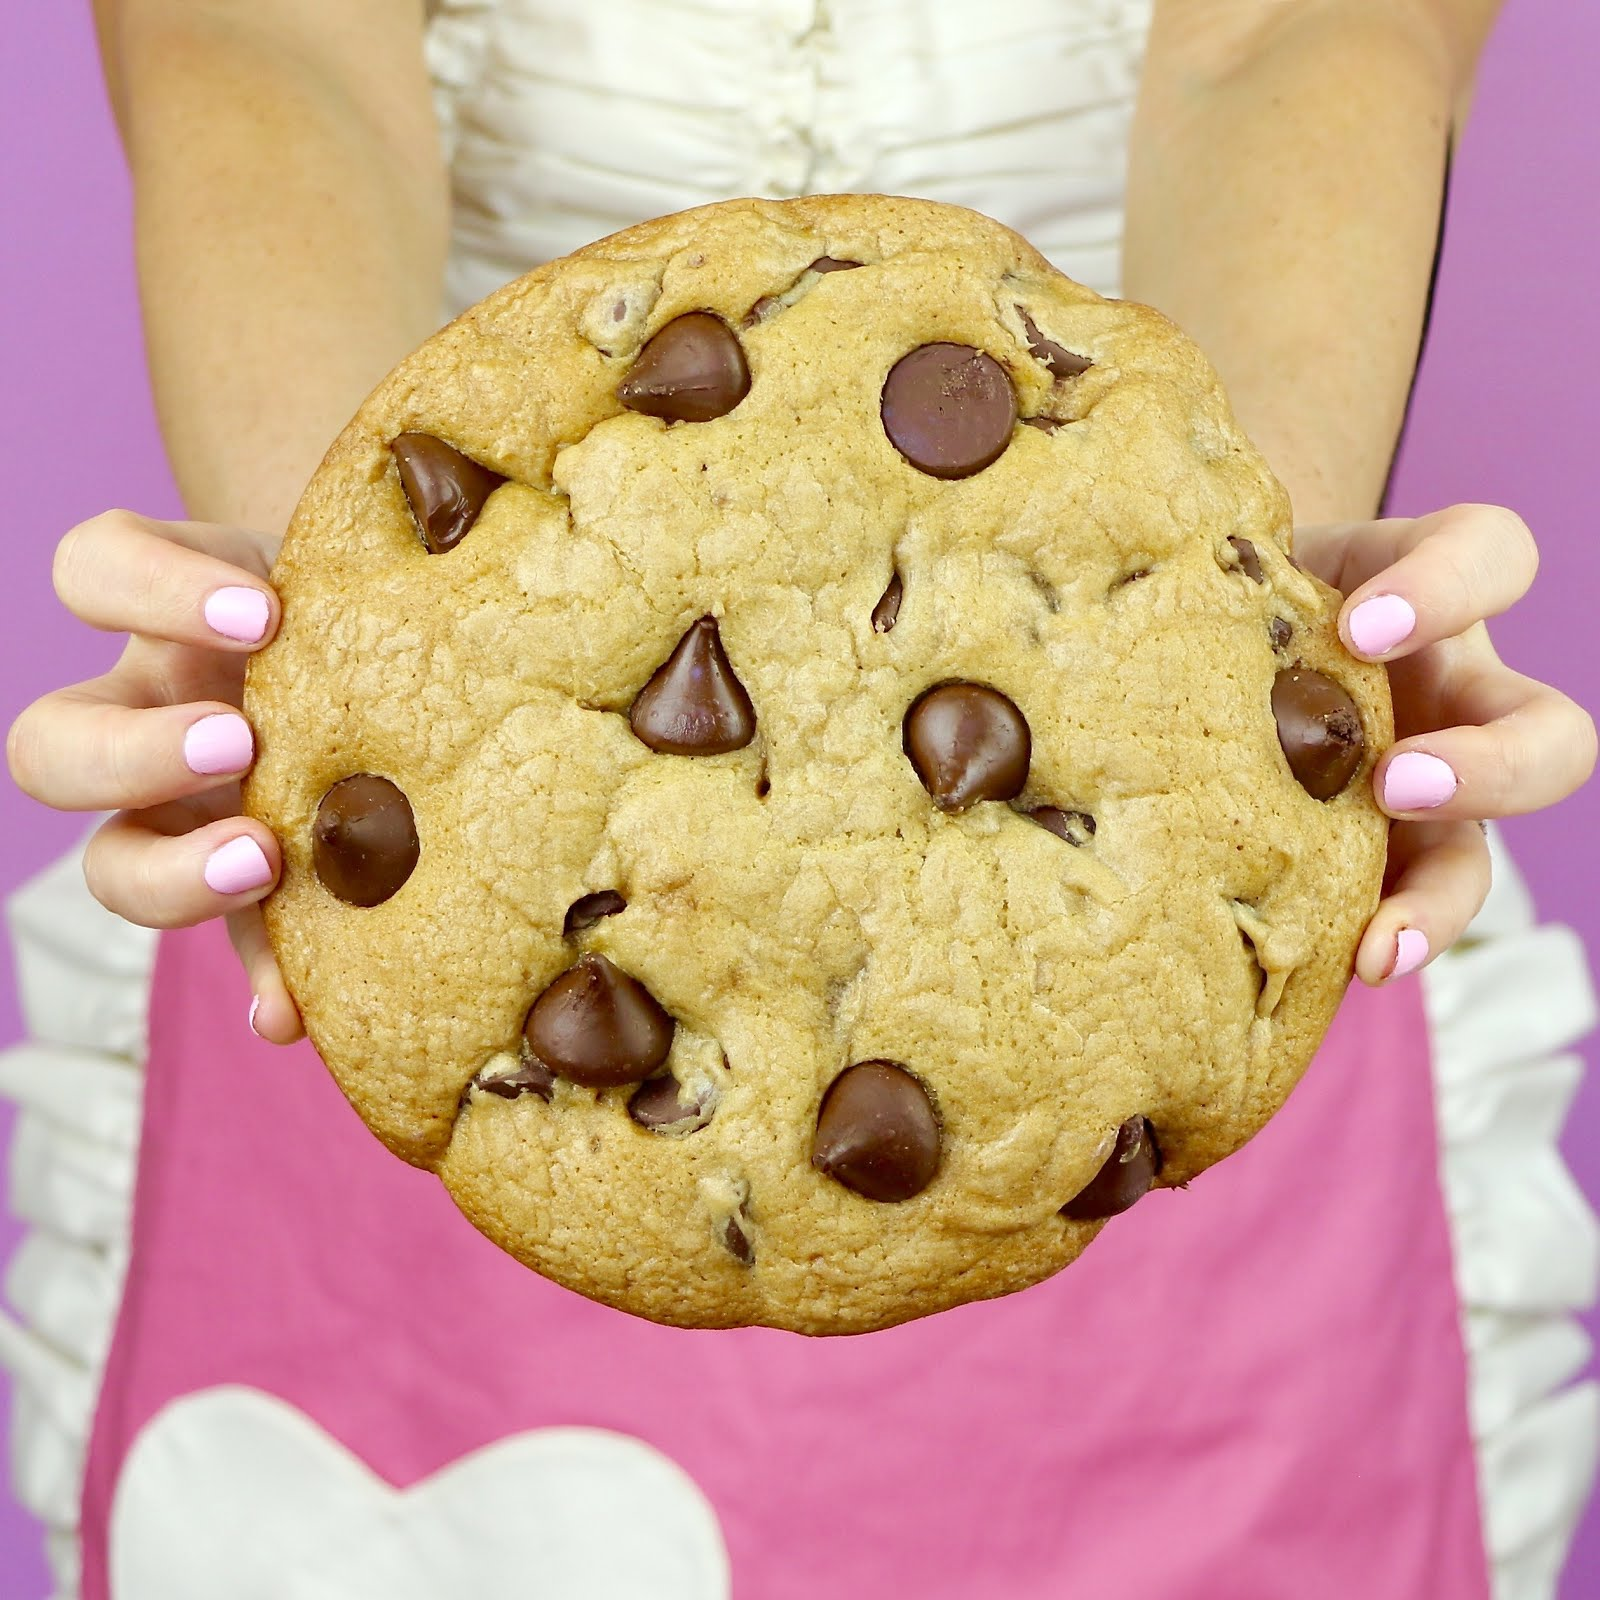 Giant Chocolate Chip Cookies - Lindsay Ann Bakes